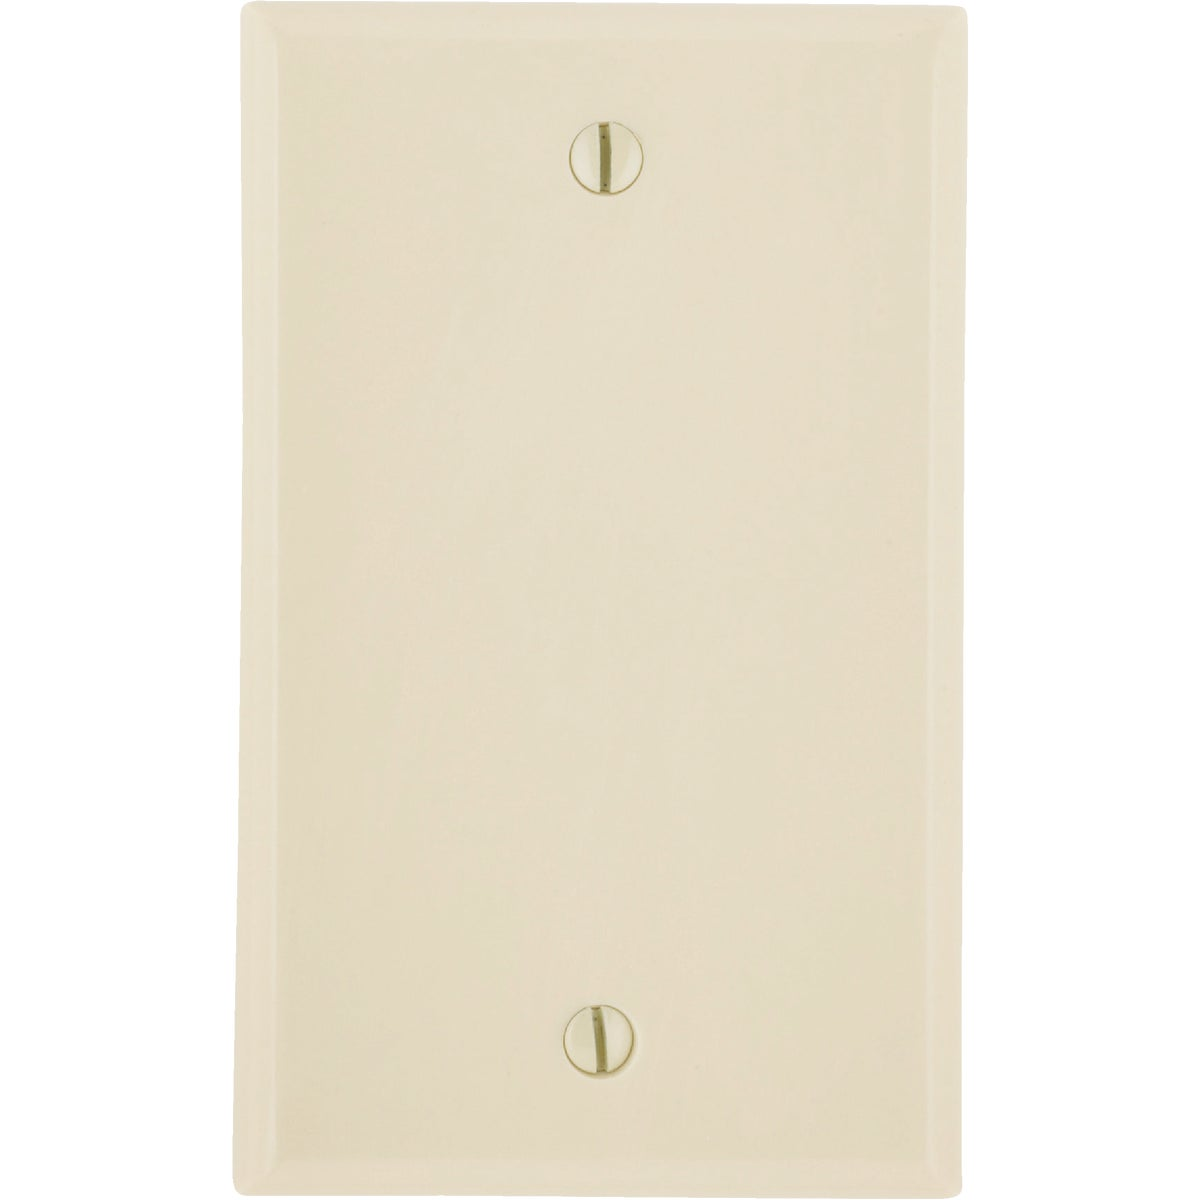 IV BLANK WALL PLATE - 86014 by Leviton Mfg Co